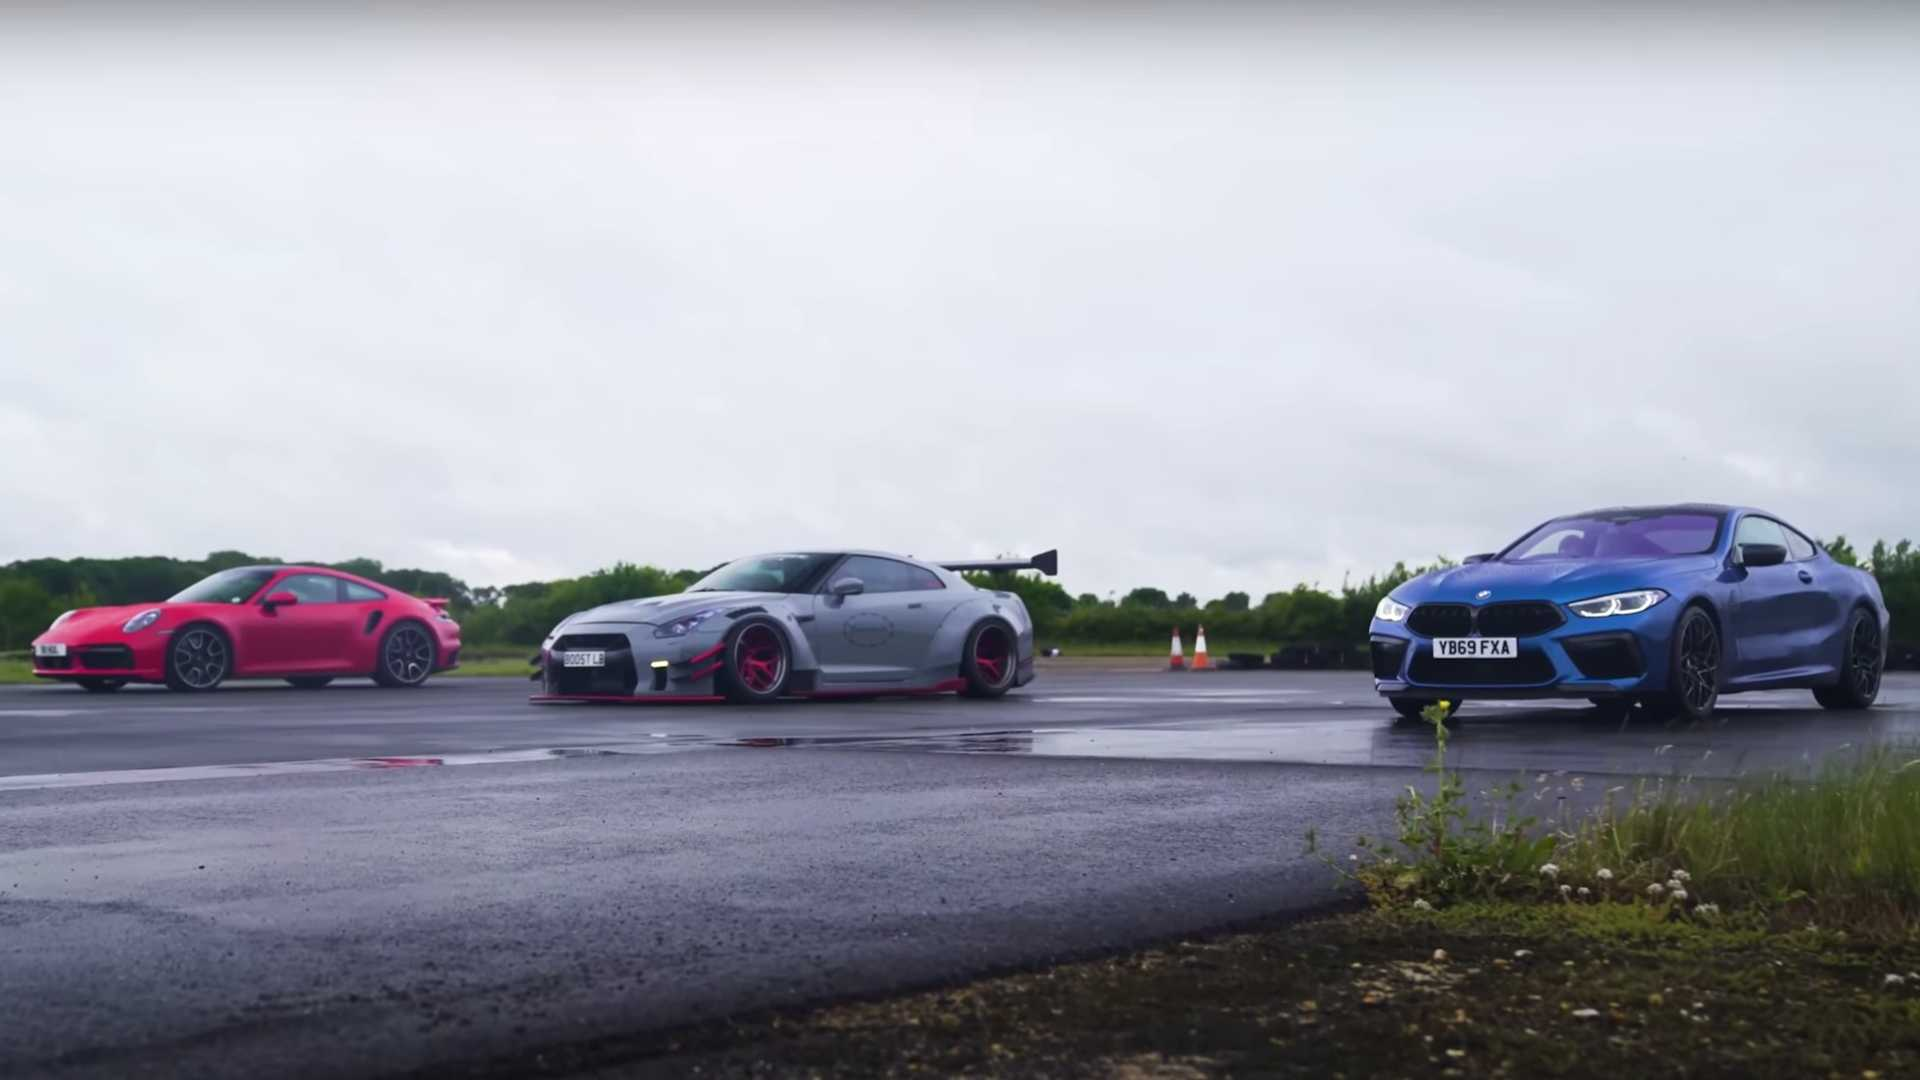 Porsche 911 Turbo S vs. BMW M8 vs. Nissan GT-R